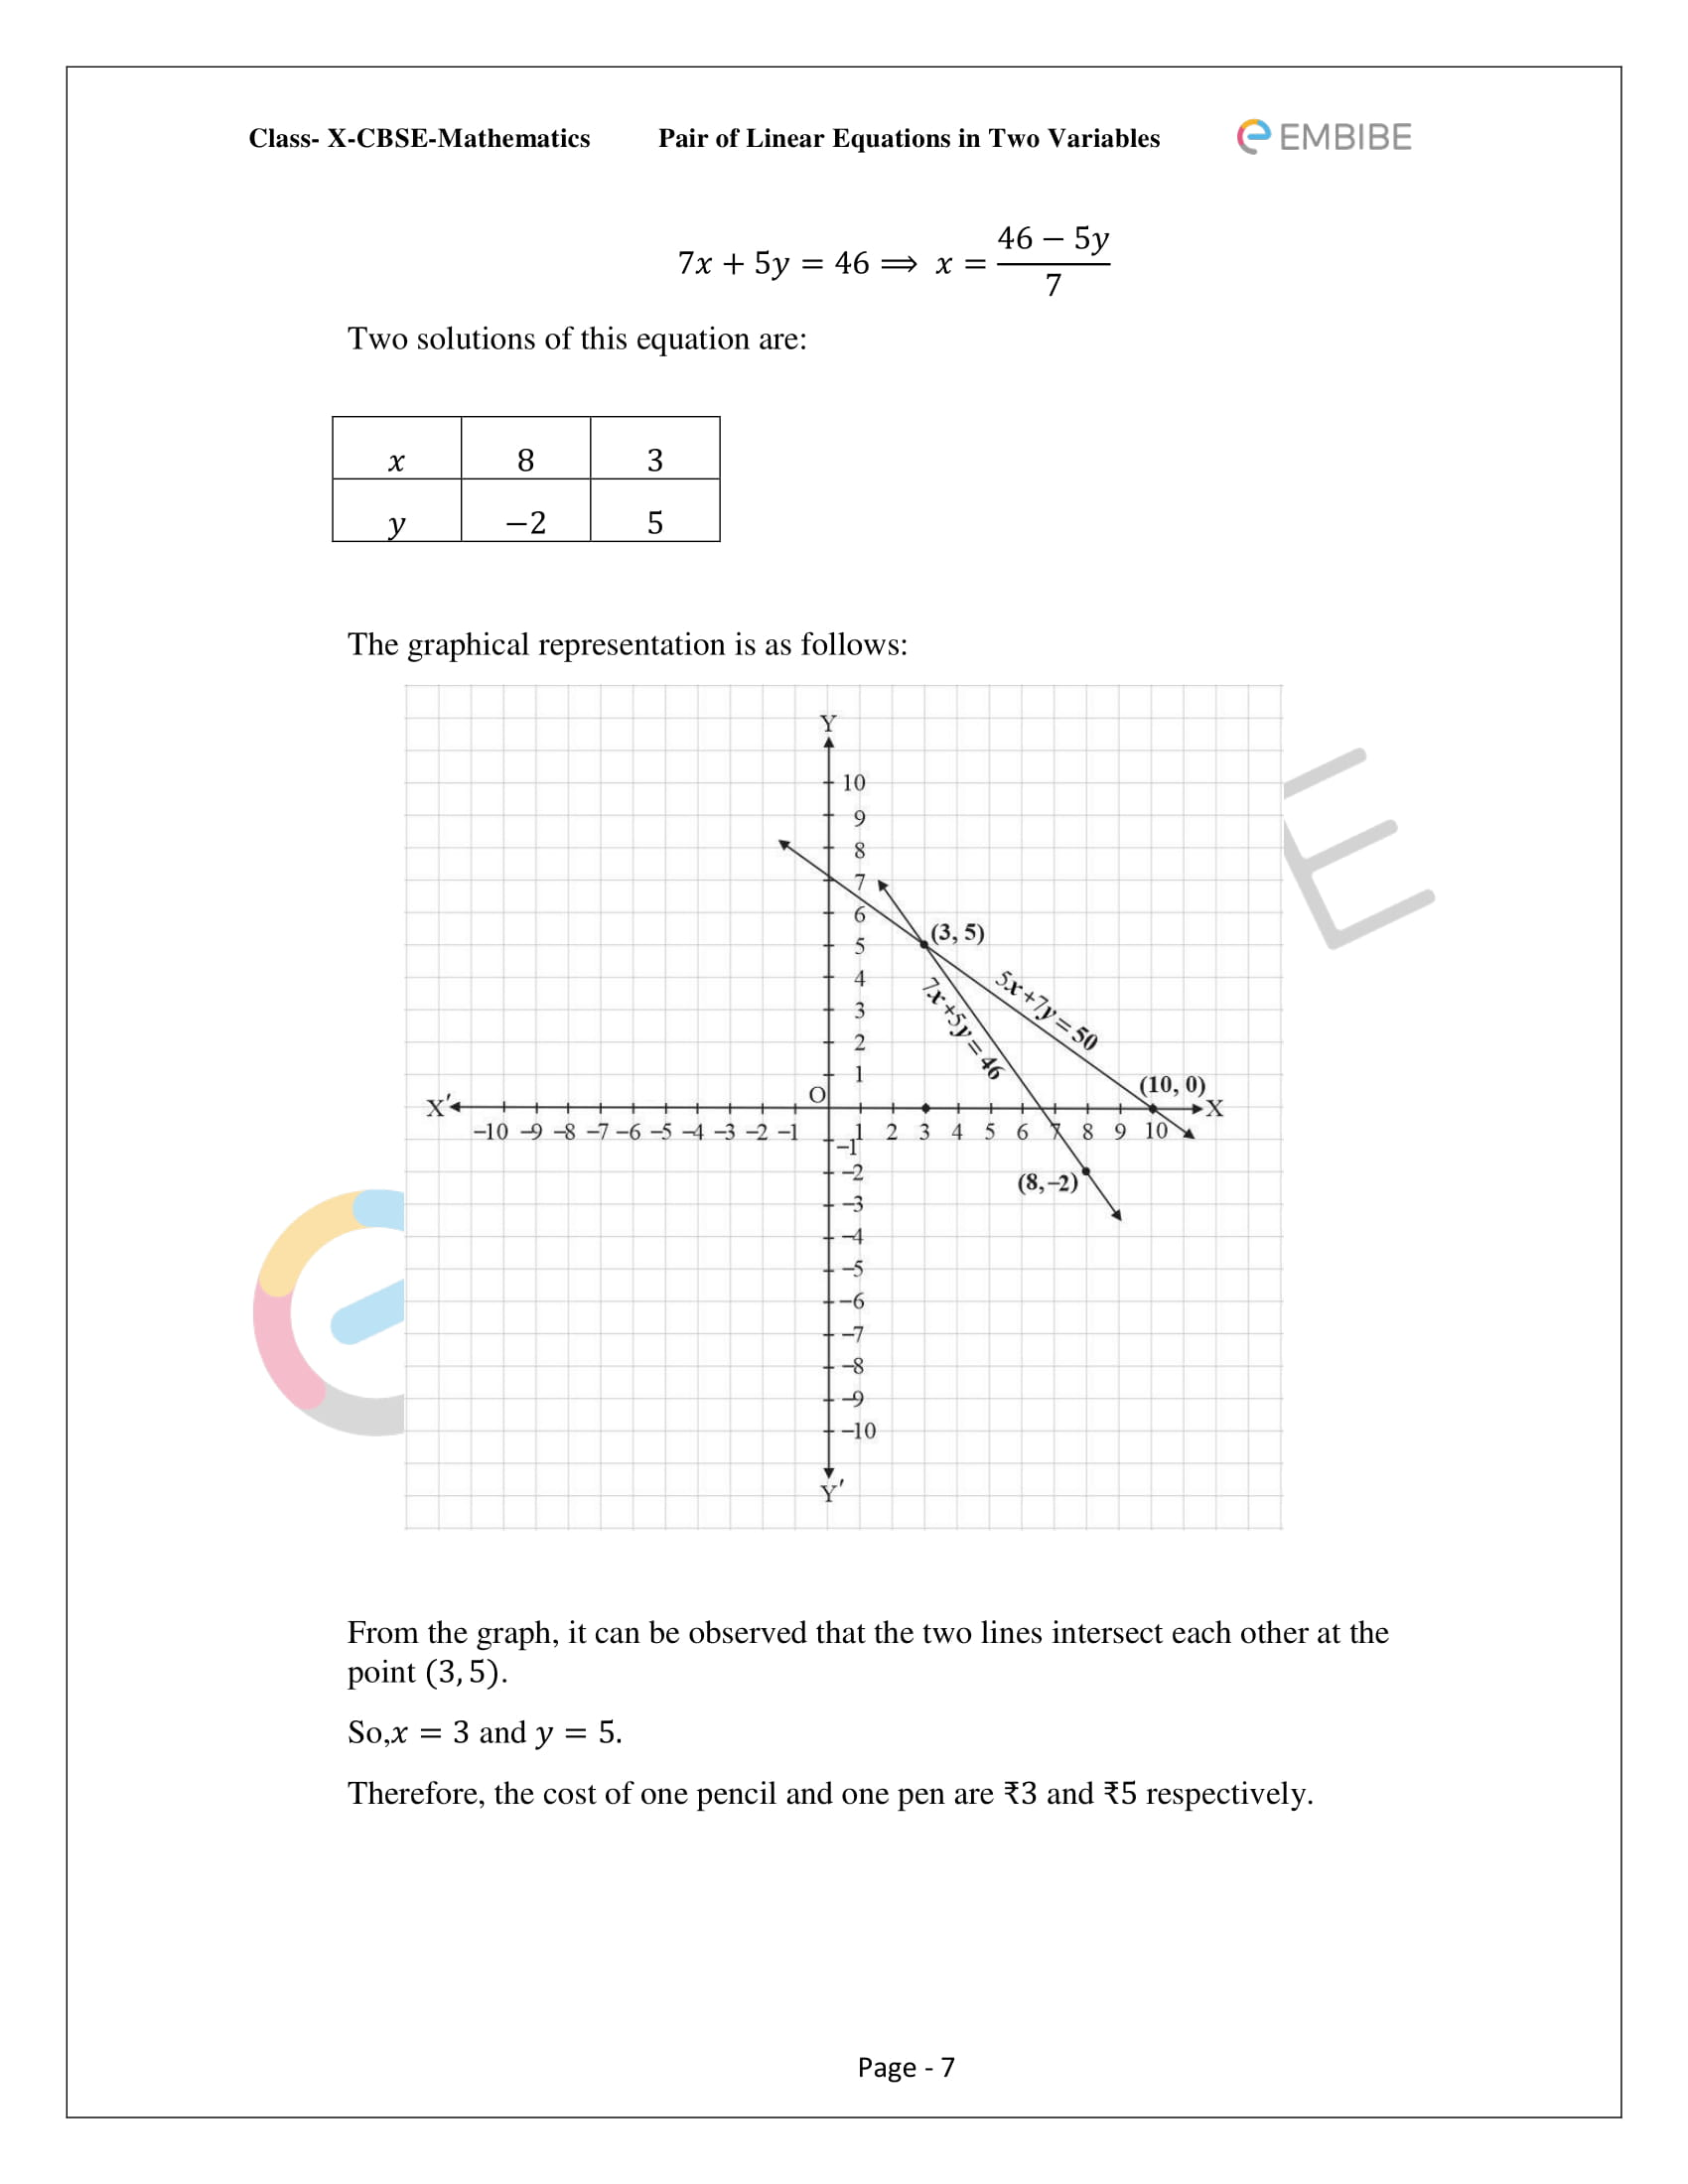 CBSE NCERT Solutions For Class 10 Maths Chapter 3 - Pair of Linear Equations In Two Variables - 7